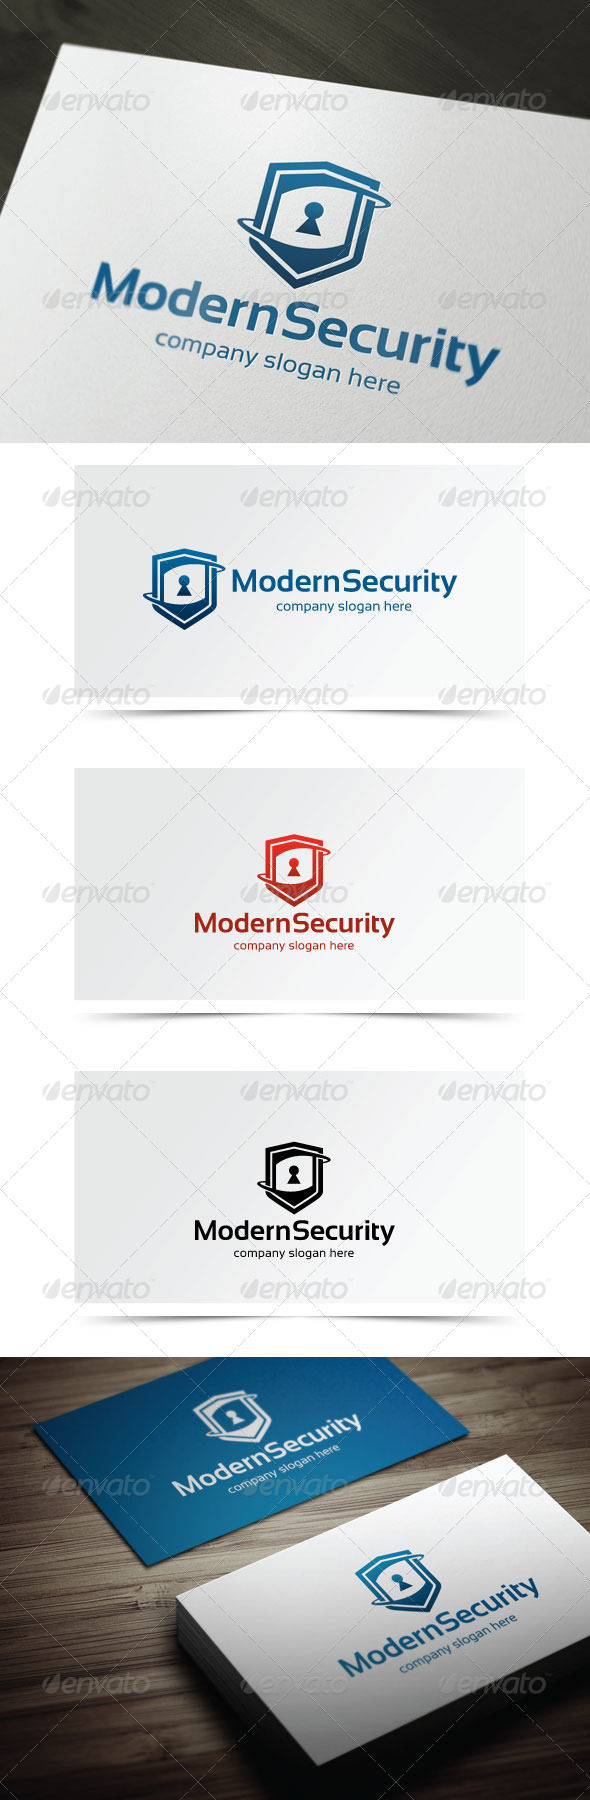 GraphicRiver Modern Security 5698724